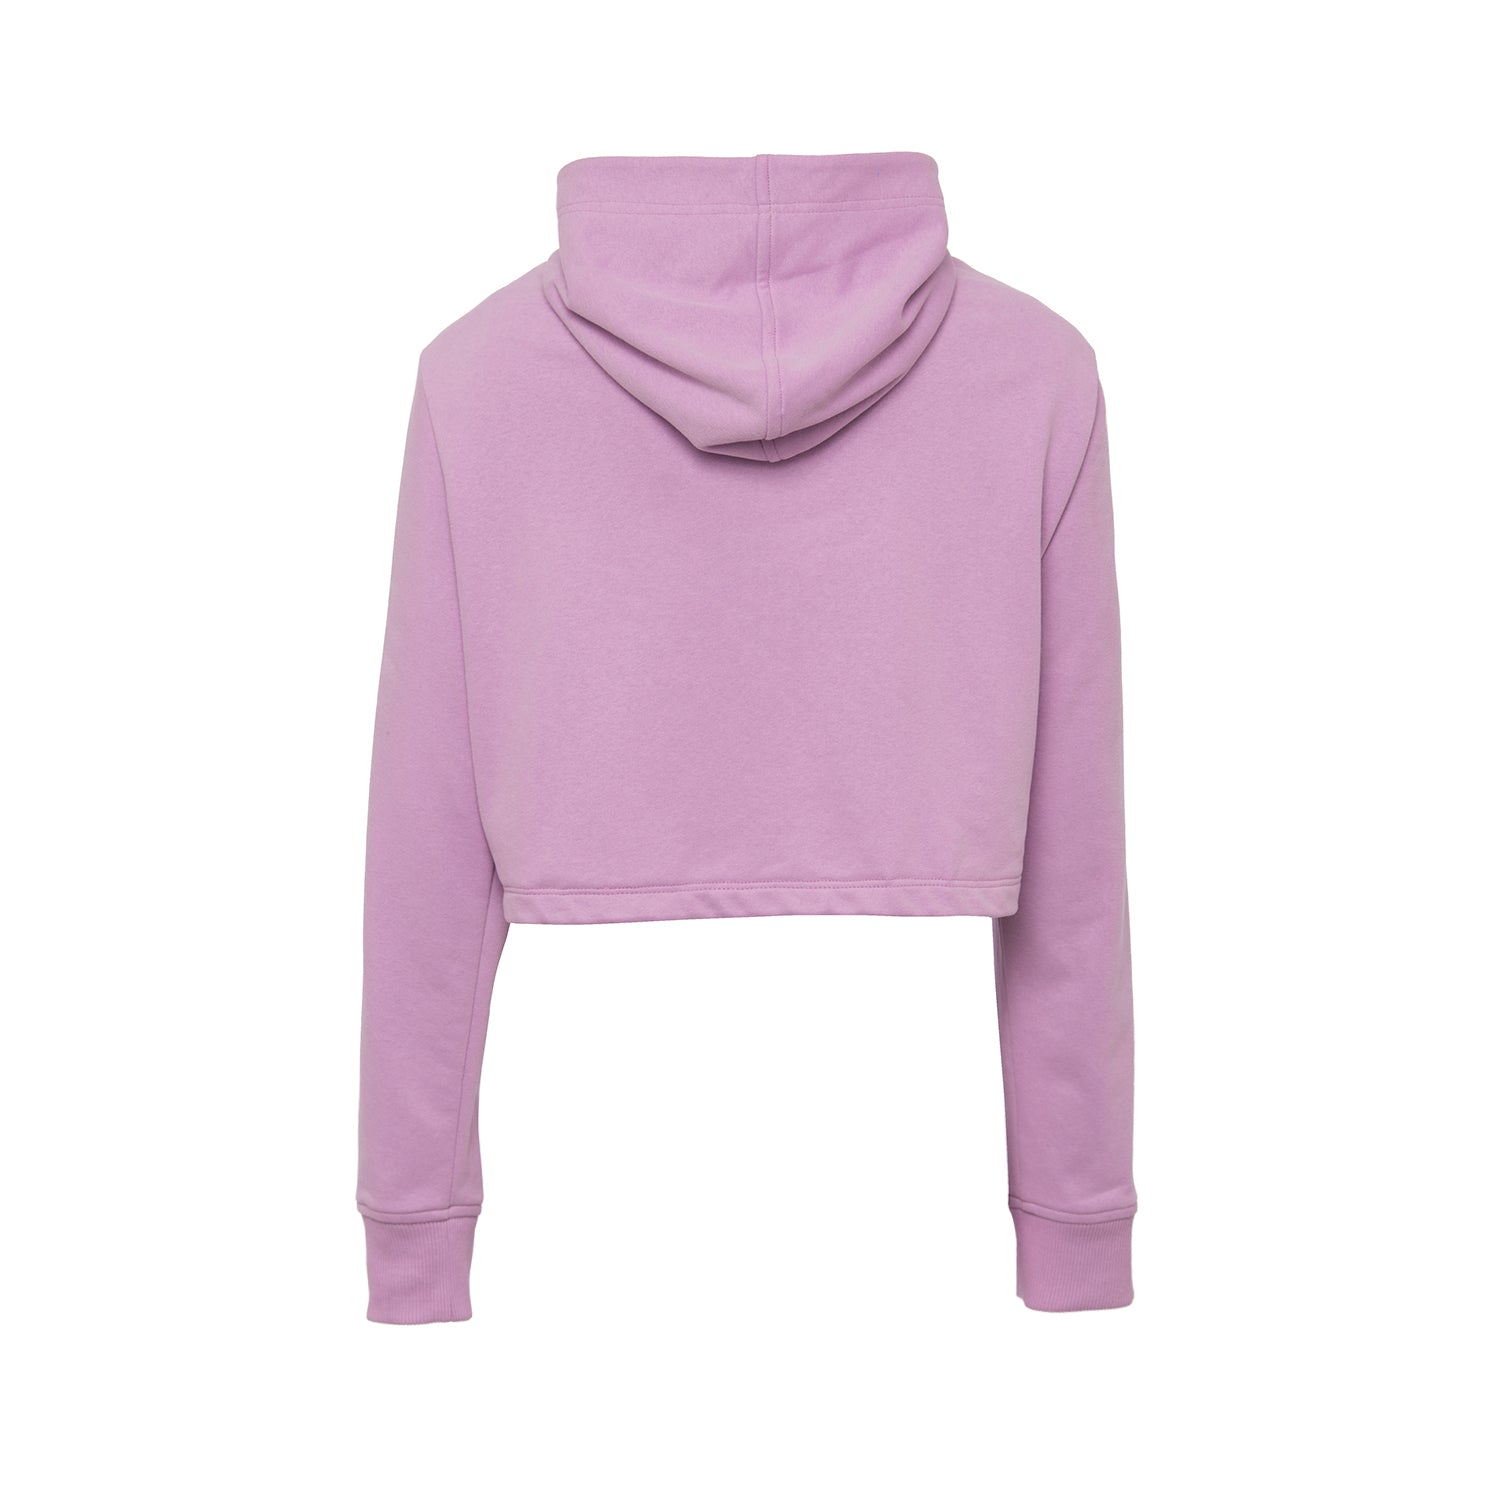 FABULOUS AND RECKLESS LILAC CROPPED SWEATSHIRT